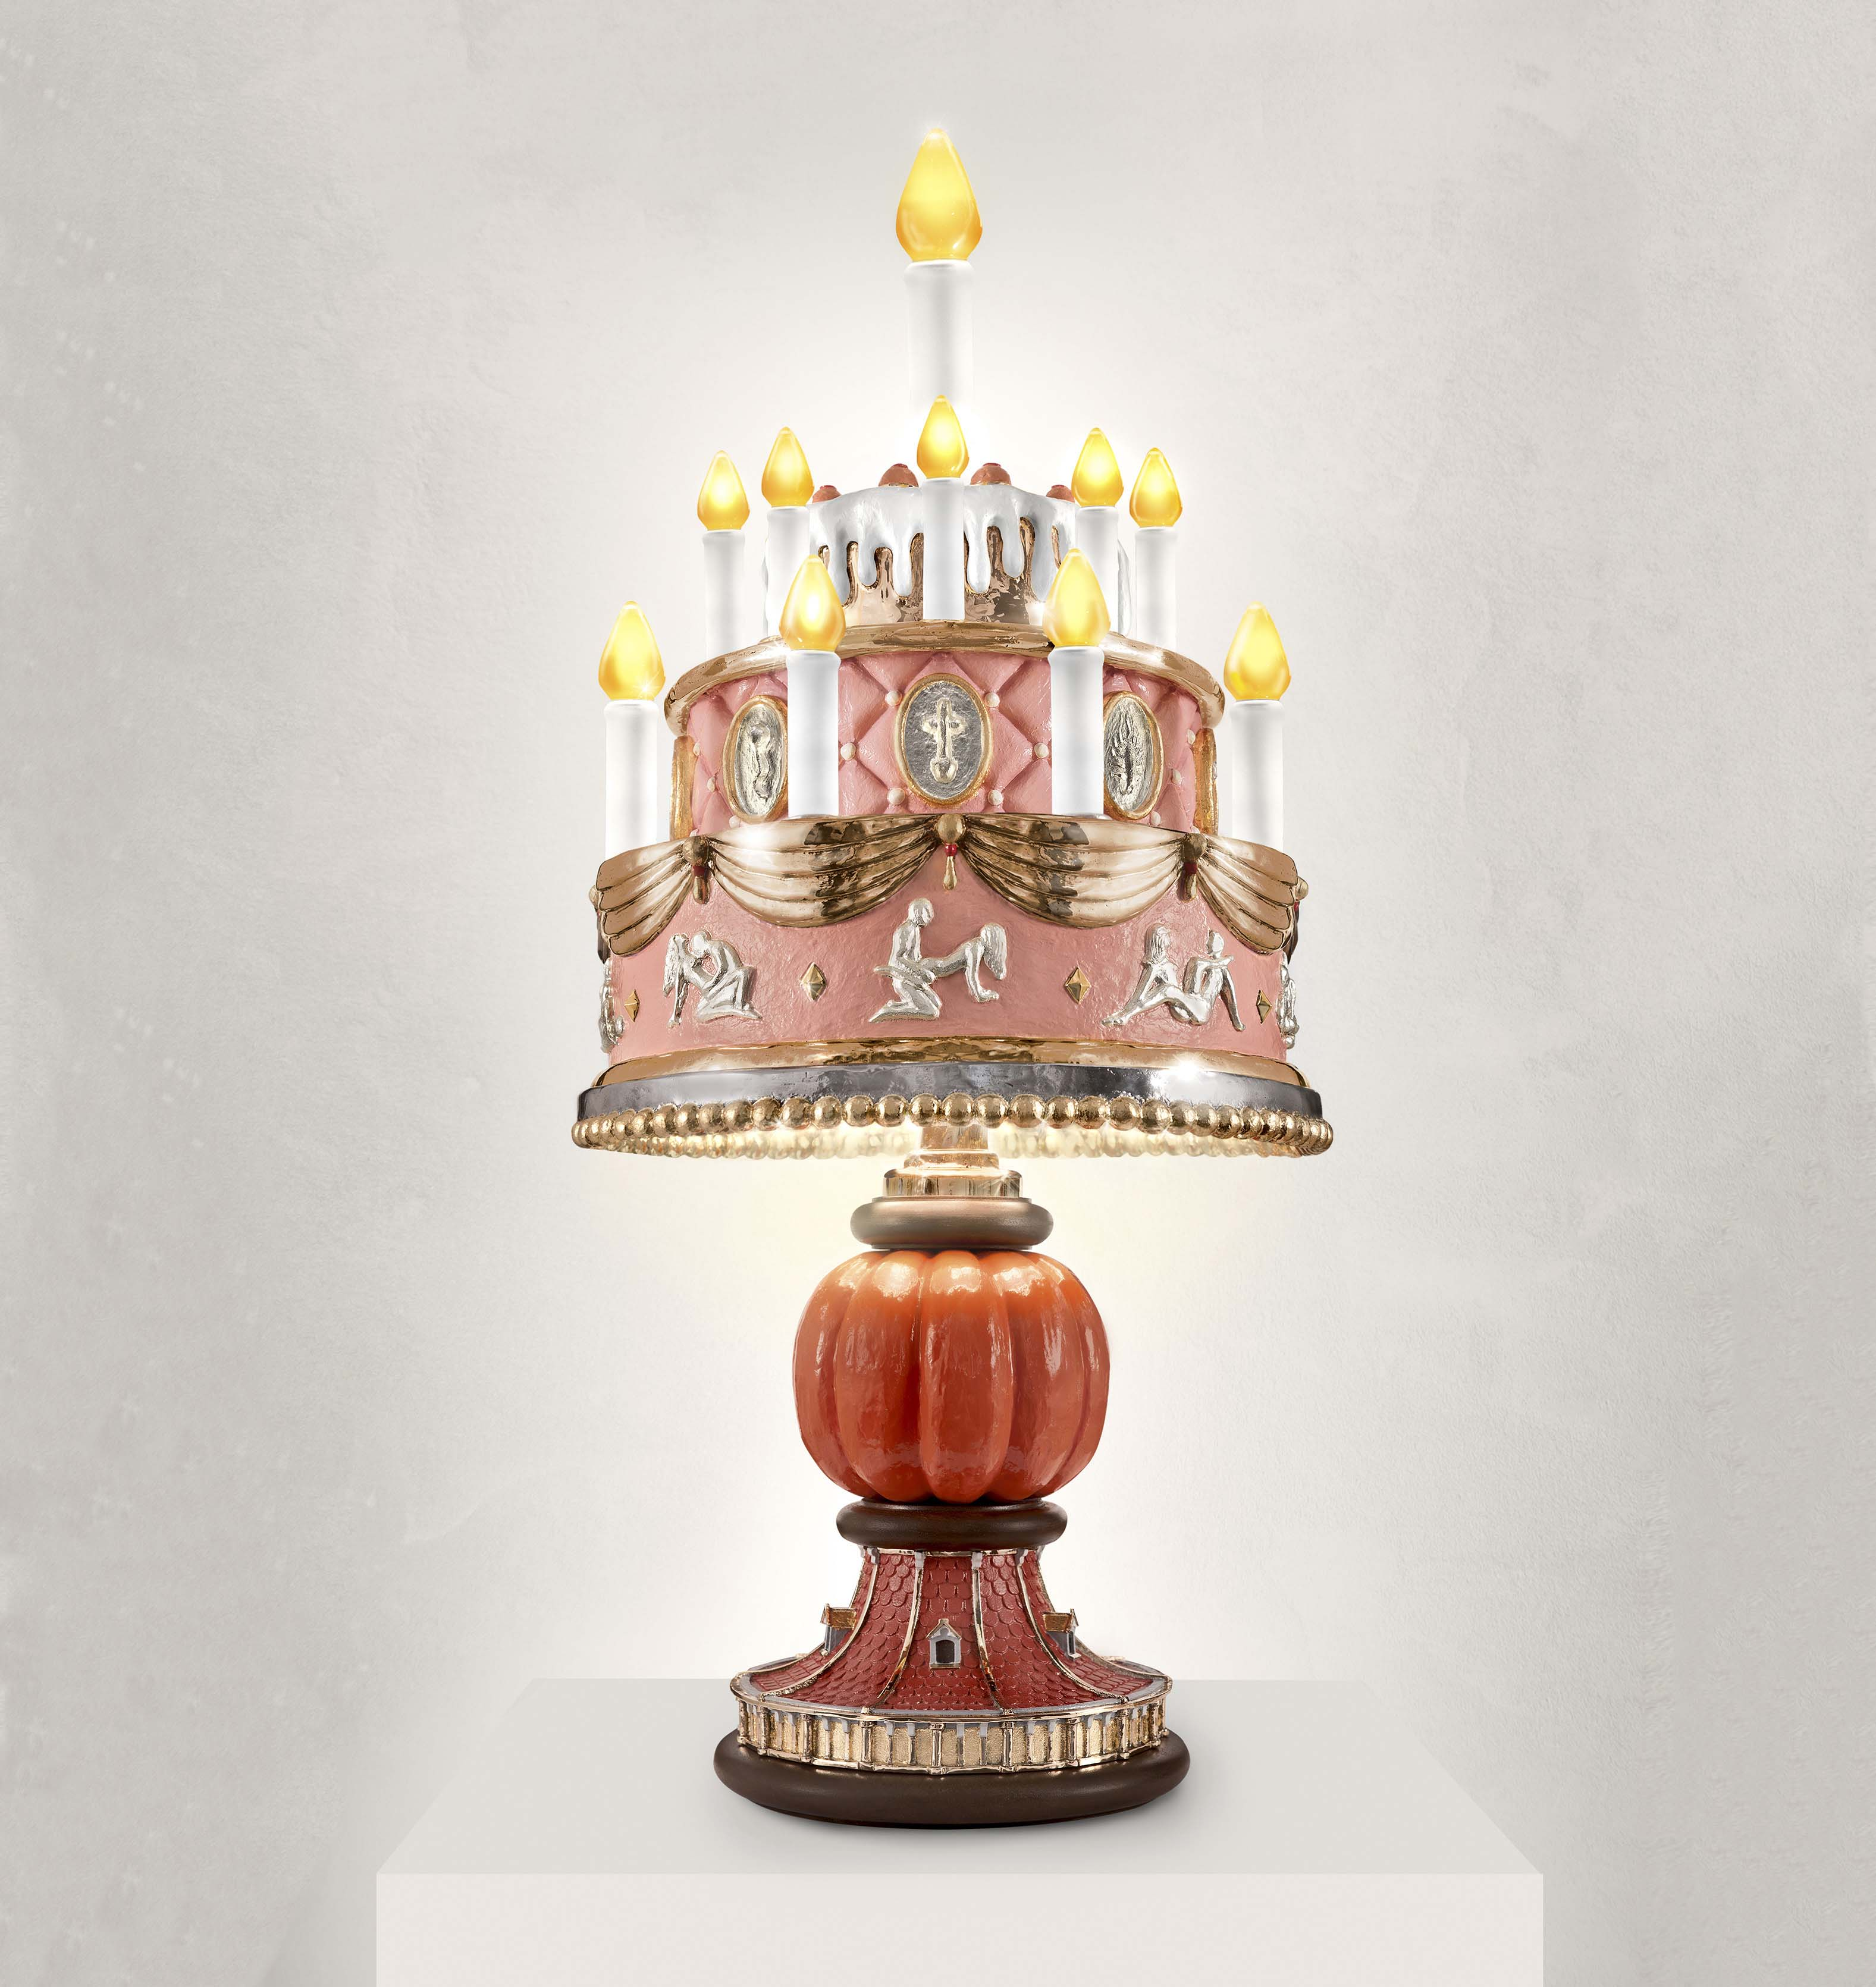 SEX CAKE 2016 POLISHED BRONZE, HANDBLOWN GLASS CANDLE, HANDPAINTING, SILVERLEAF, GOLDLEAF, LED H85 L45 W45 CM / H33.5 L17.1 W17.1 IN LIMITED EDITION OF 6 + 3 AP + PROTOTYPE